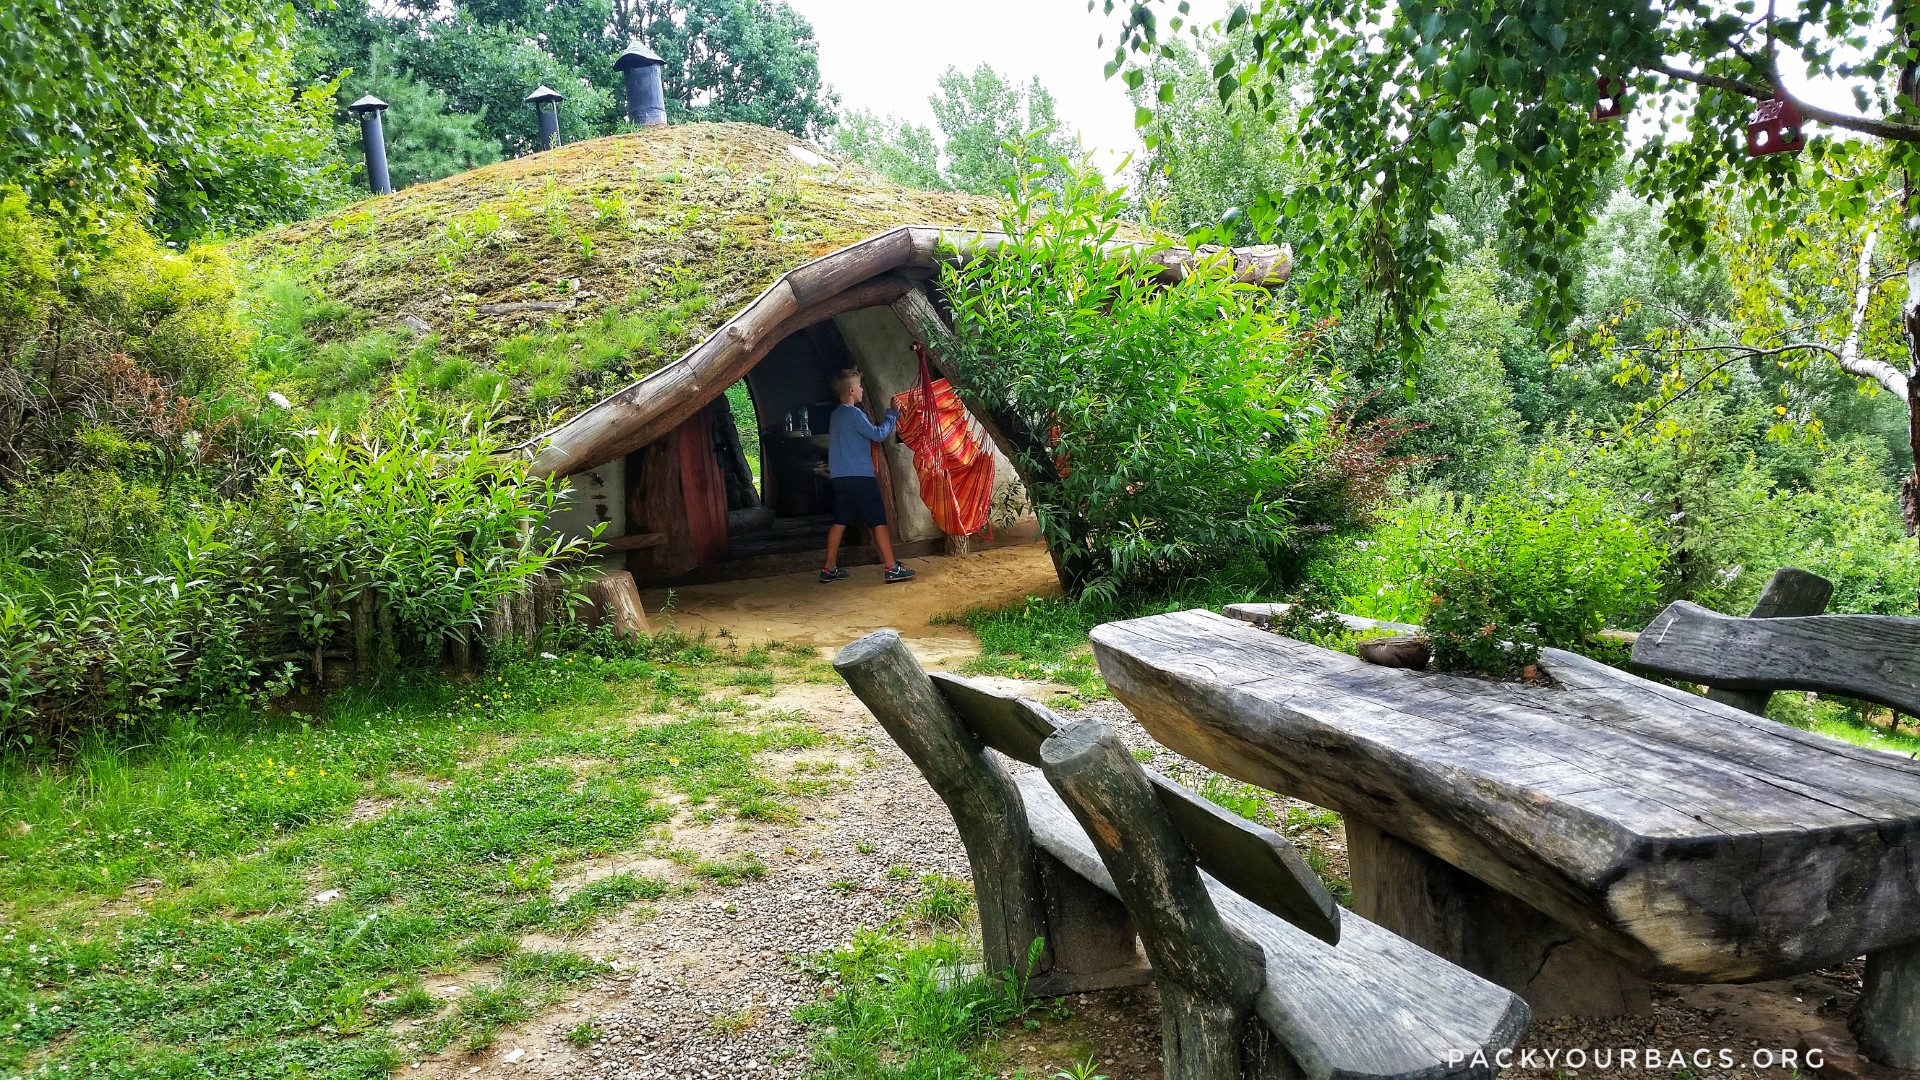 Hobbitówa, the Polish Hobbit House